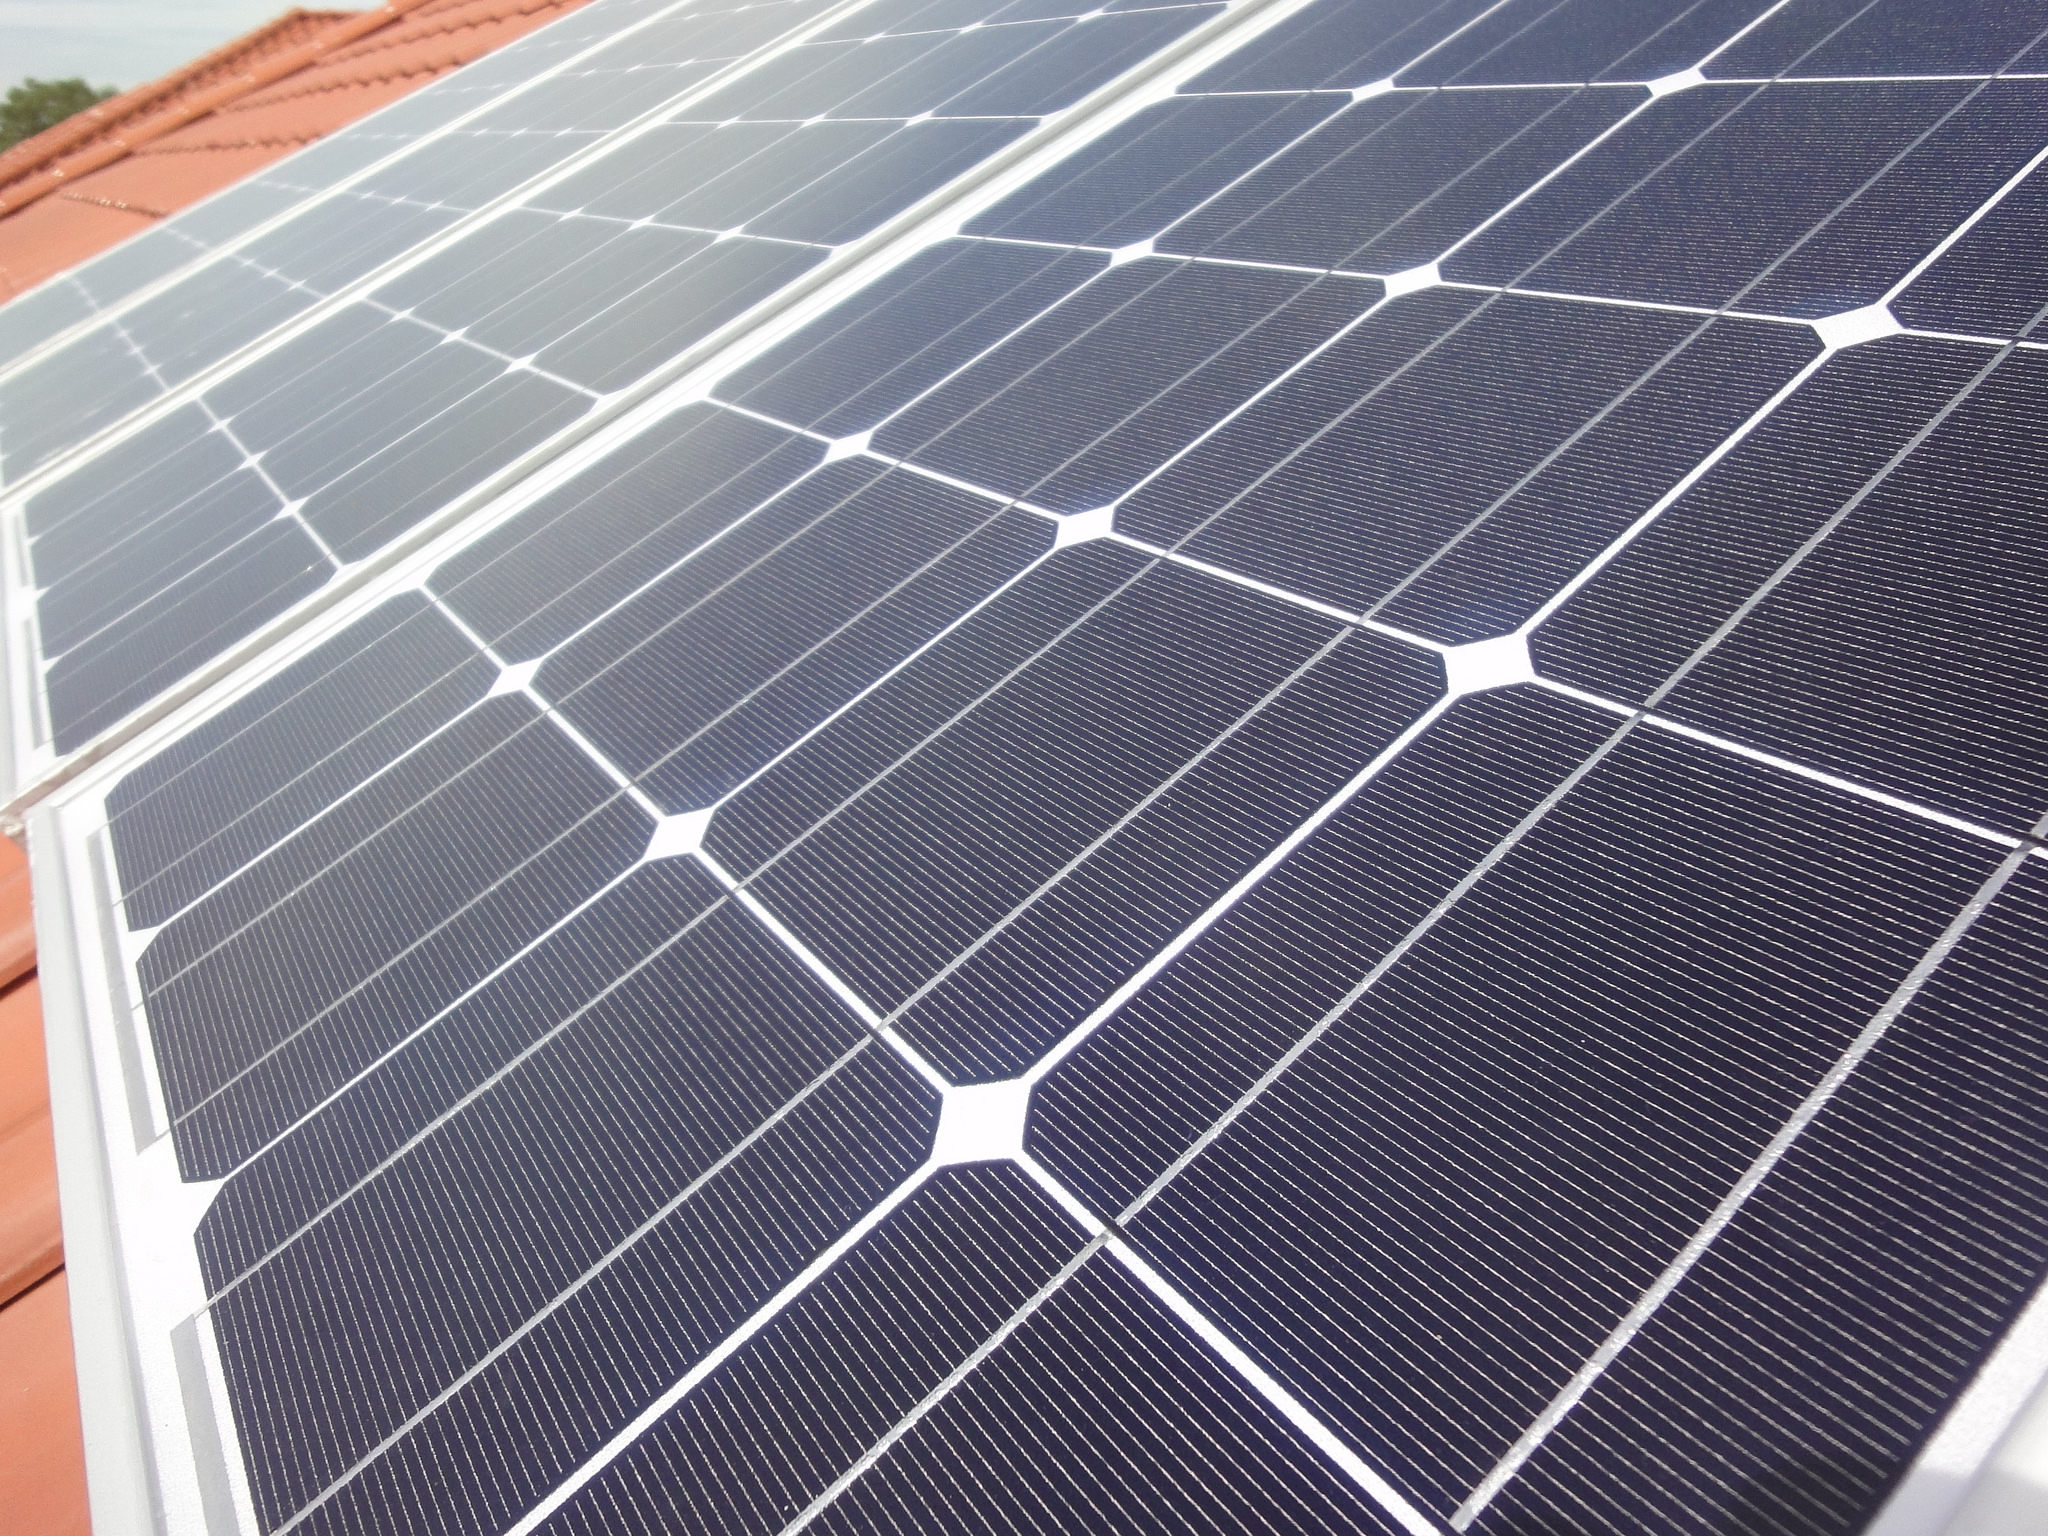 7 Reasons Why Solar Is Becoming More Popular Solar